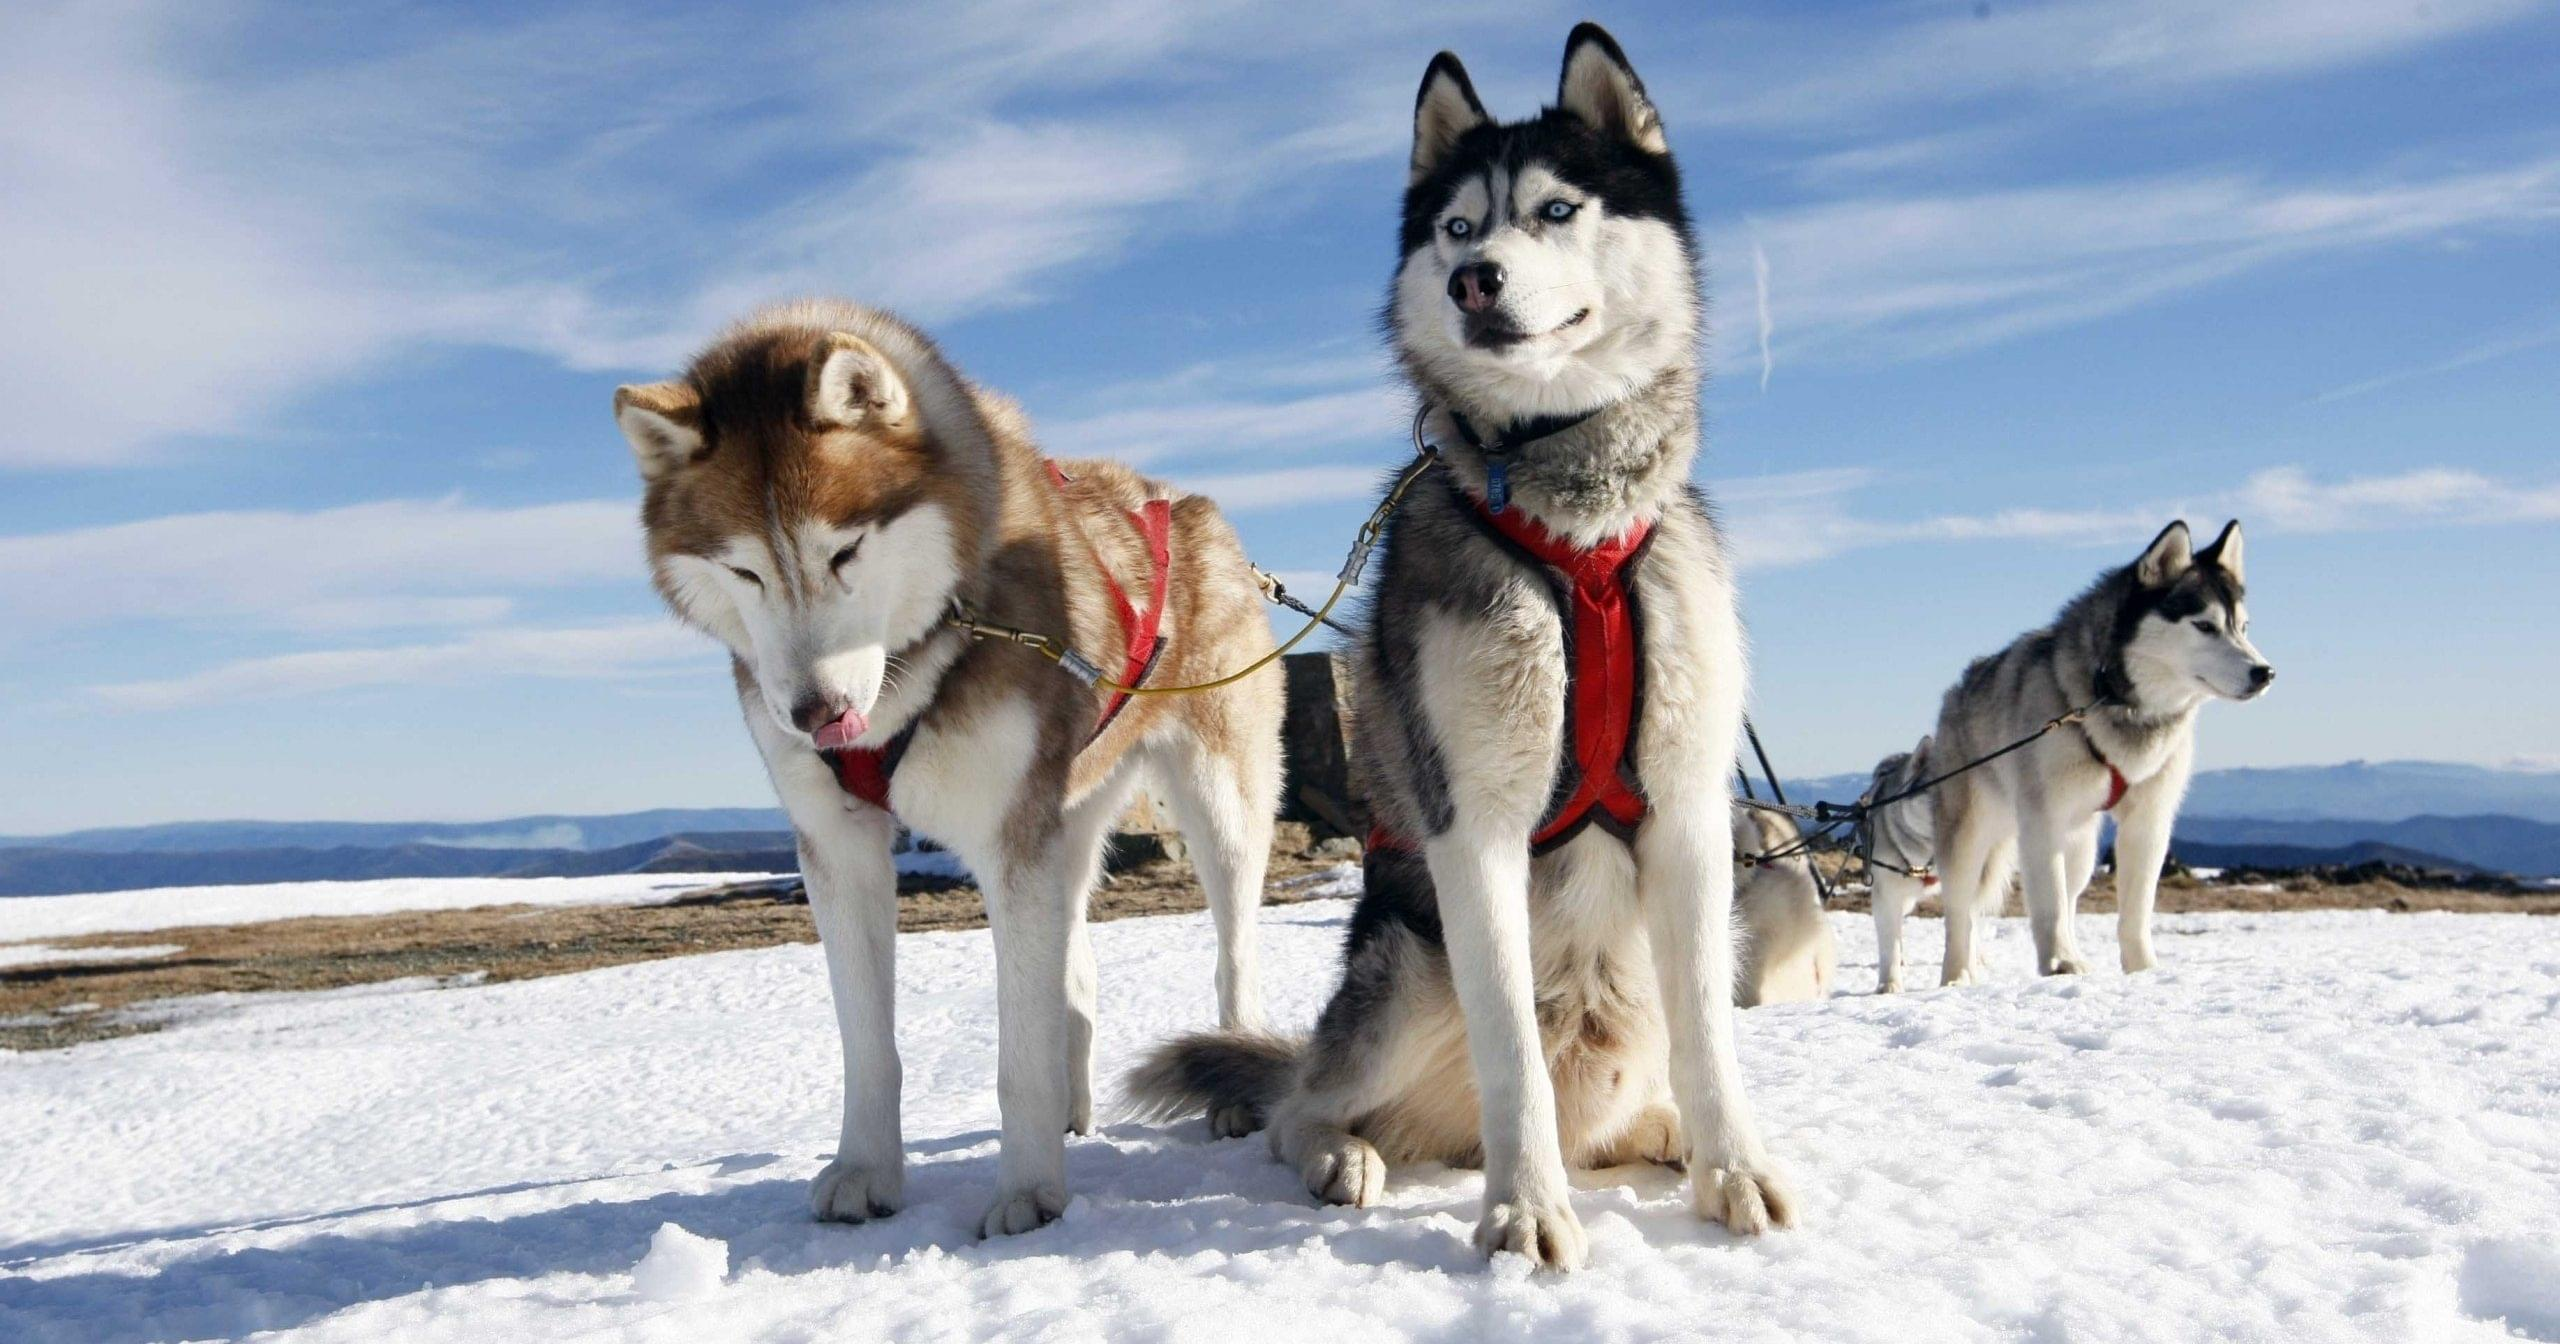 mountains-winter-sleigh-dogs-team-husky